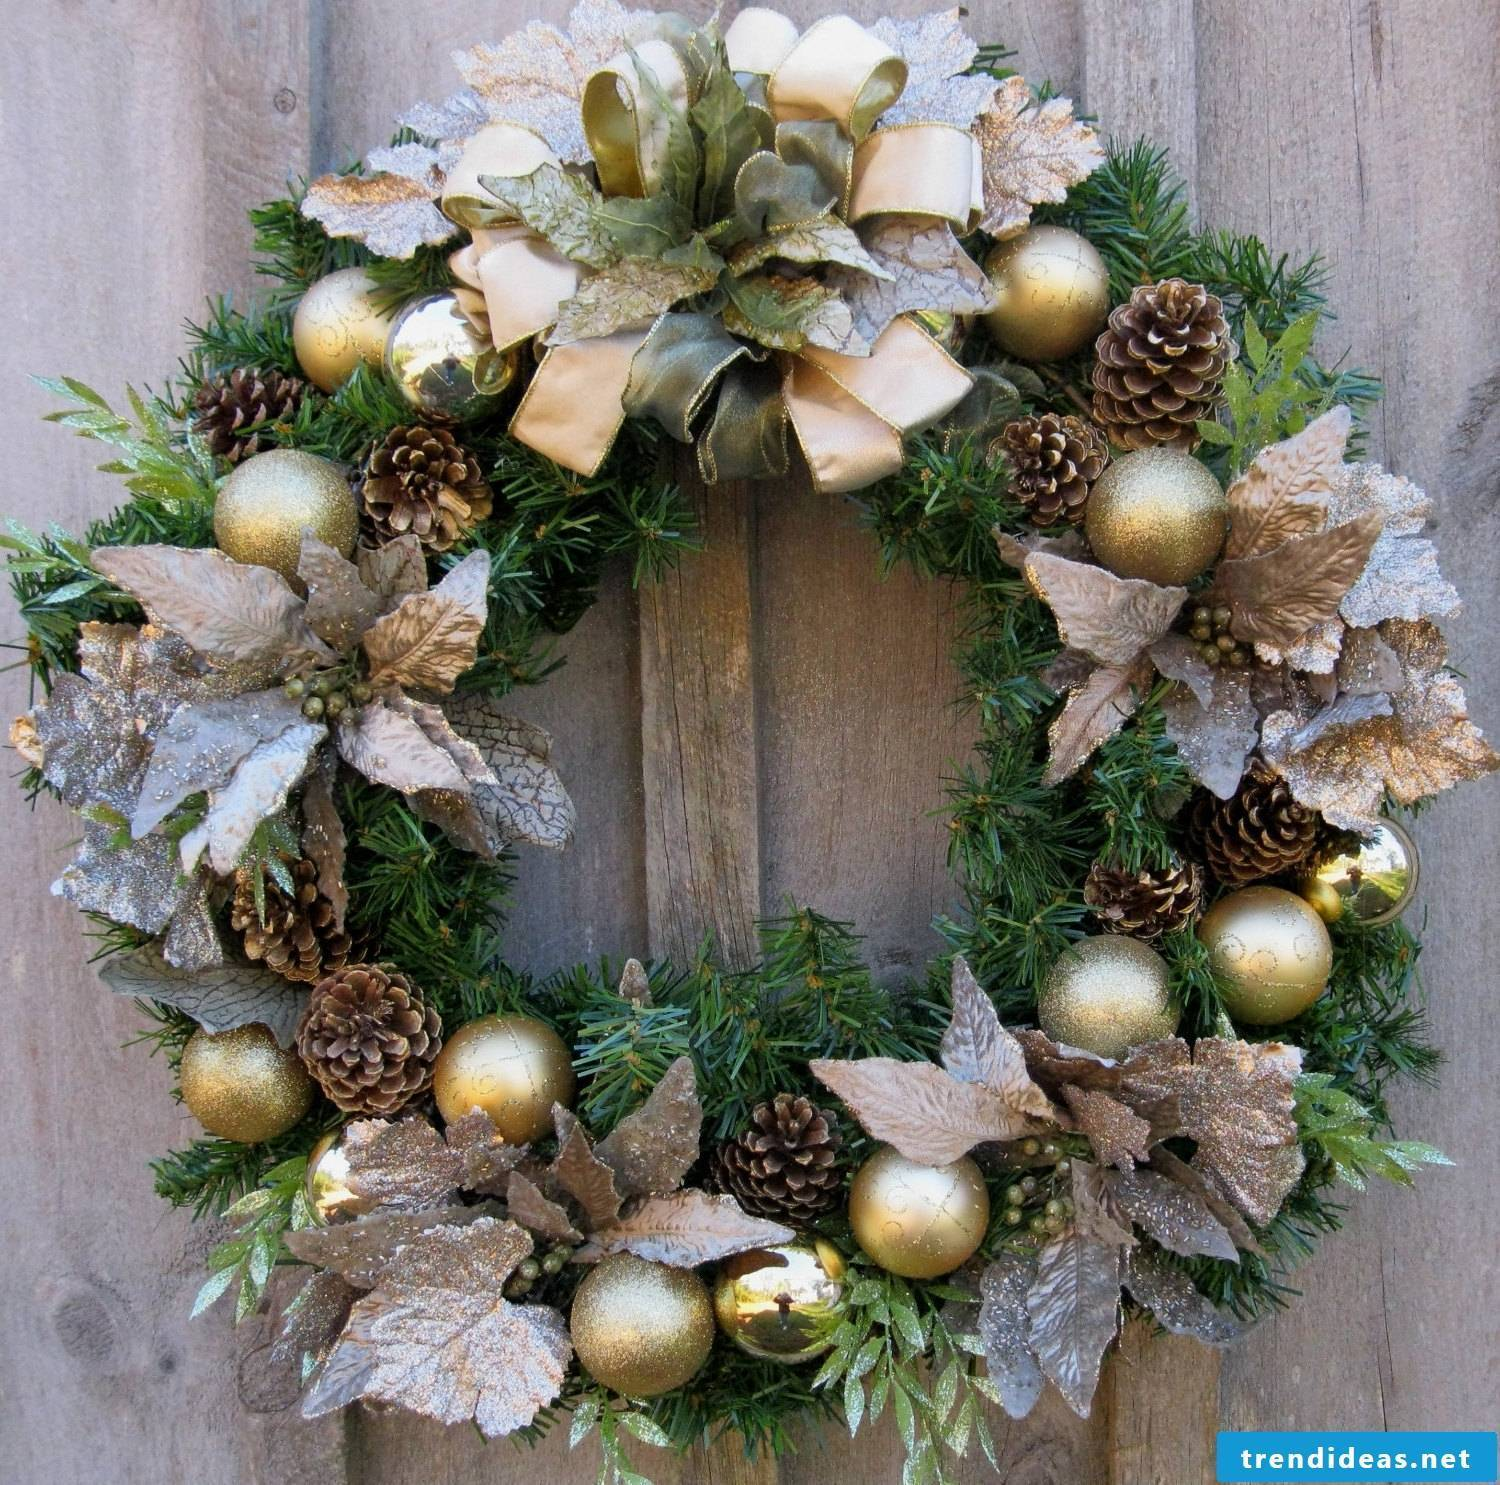 Richly decorated wreath for Christmas